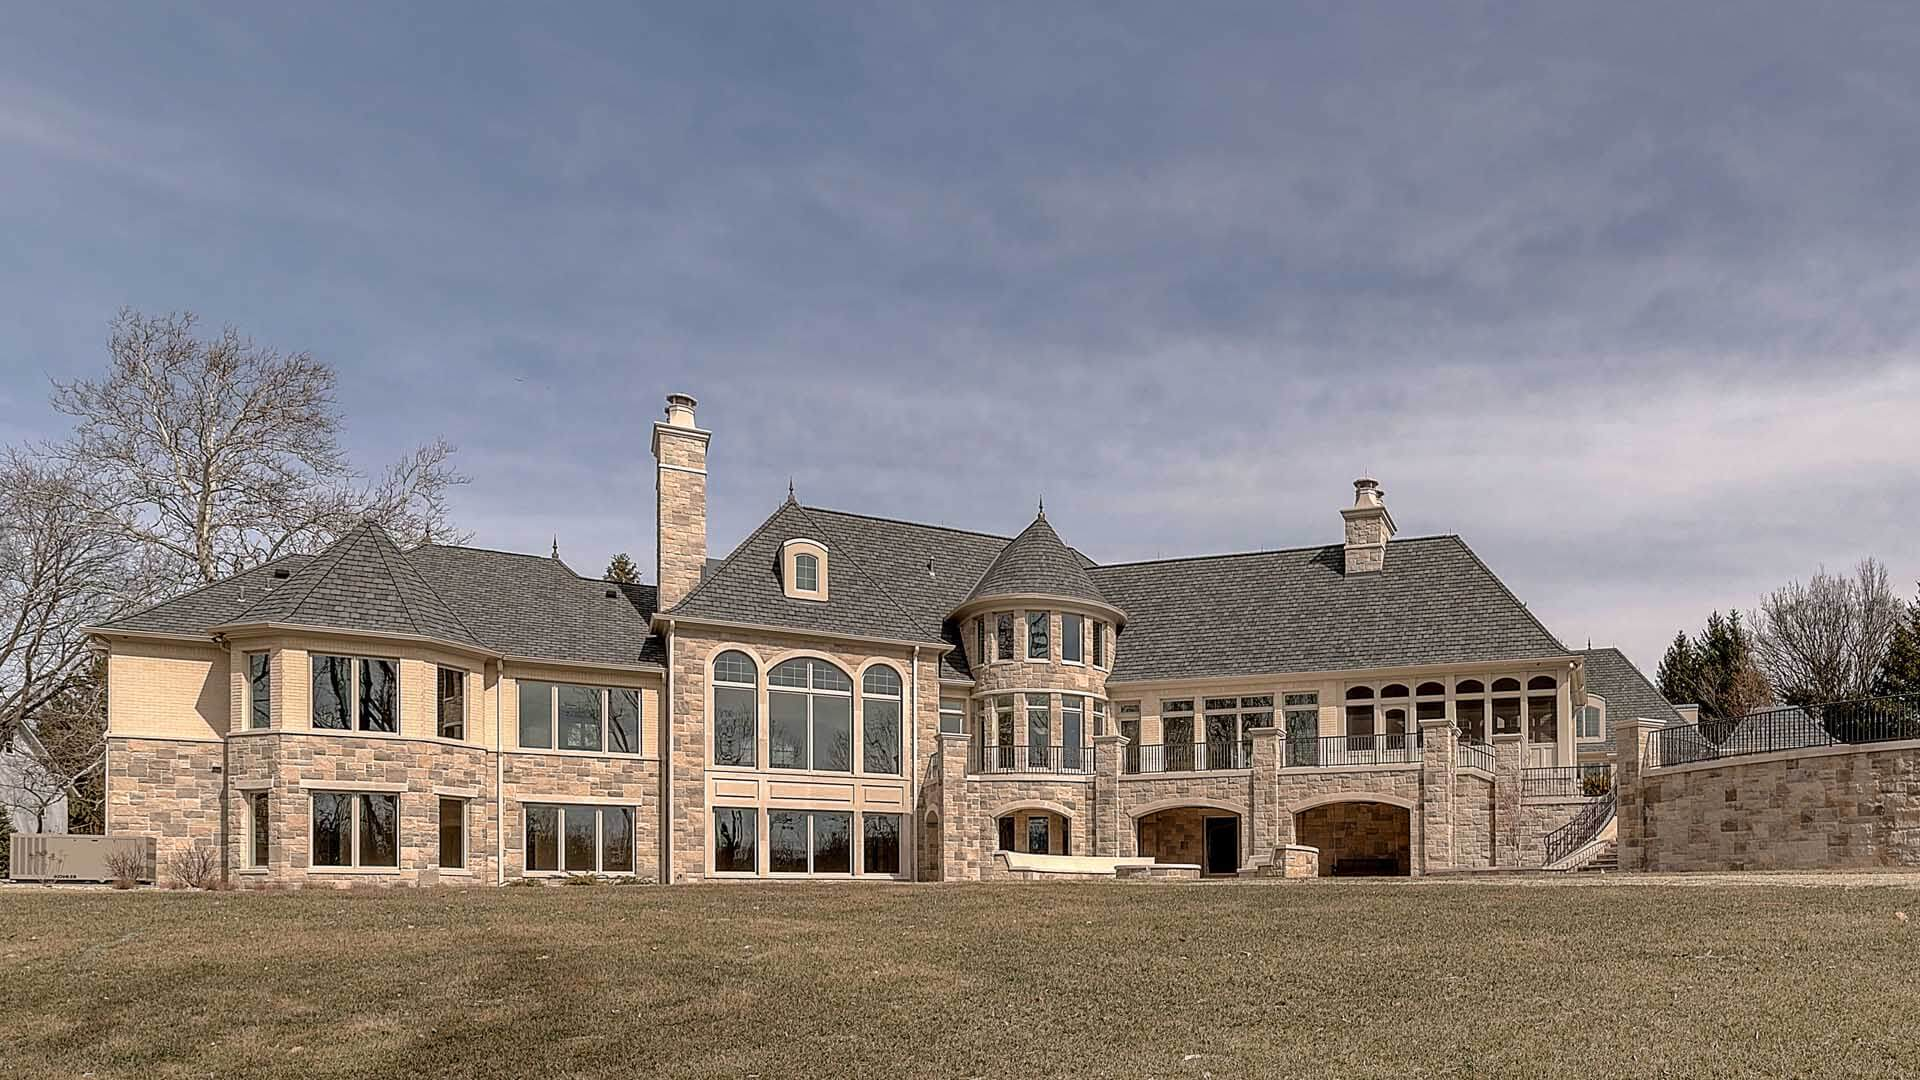 Ennis Custom Homes - Indiana Luxury Home Builder - Back View of Home Fairly Close